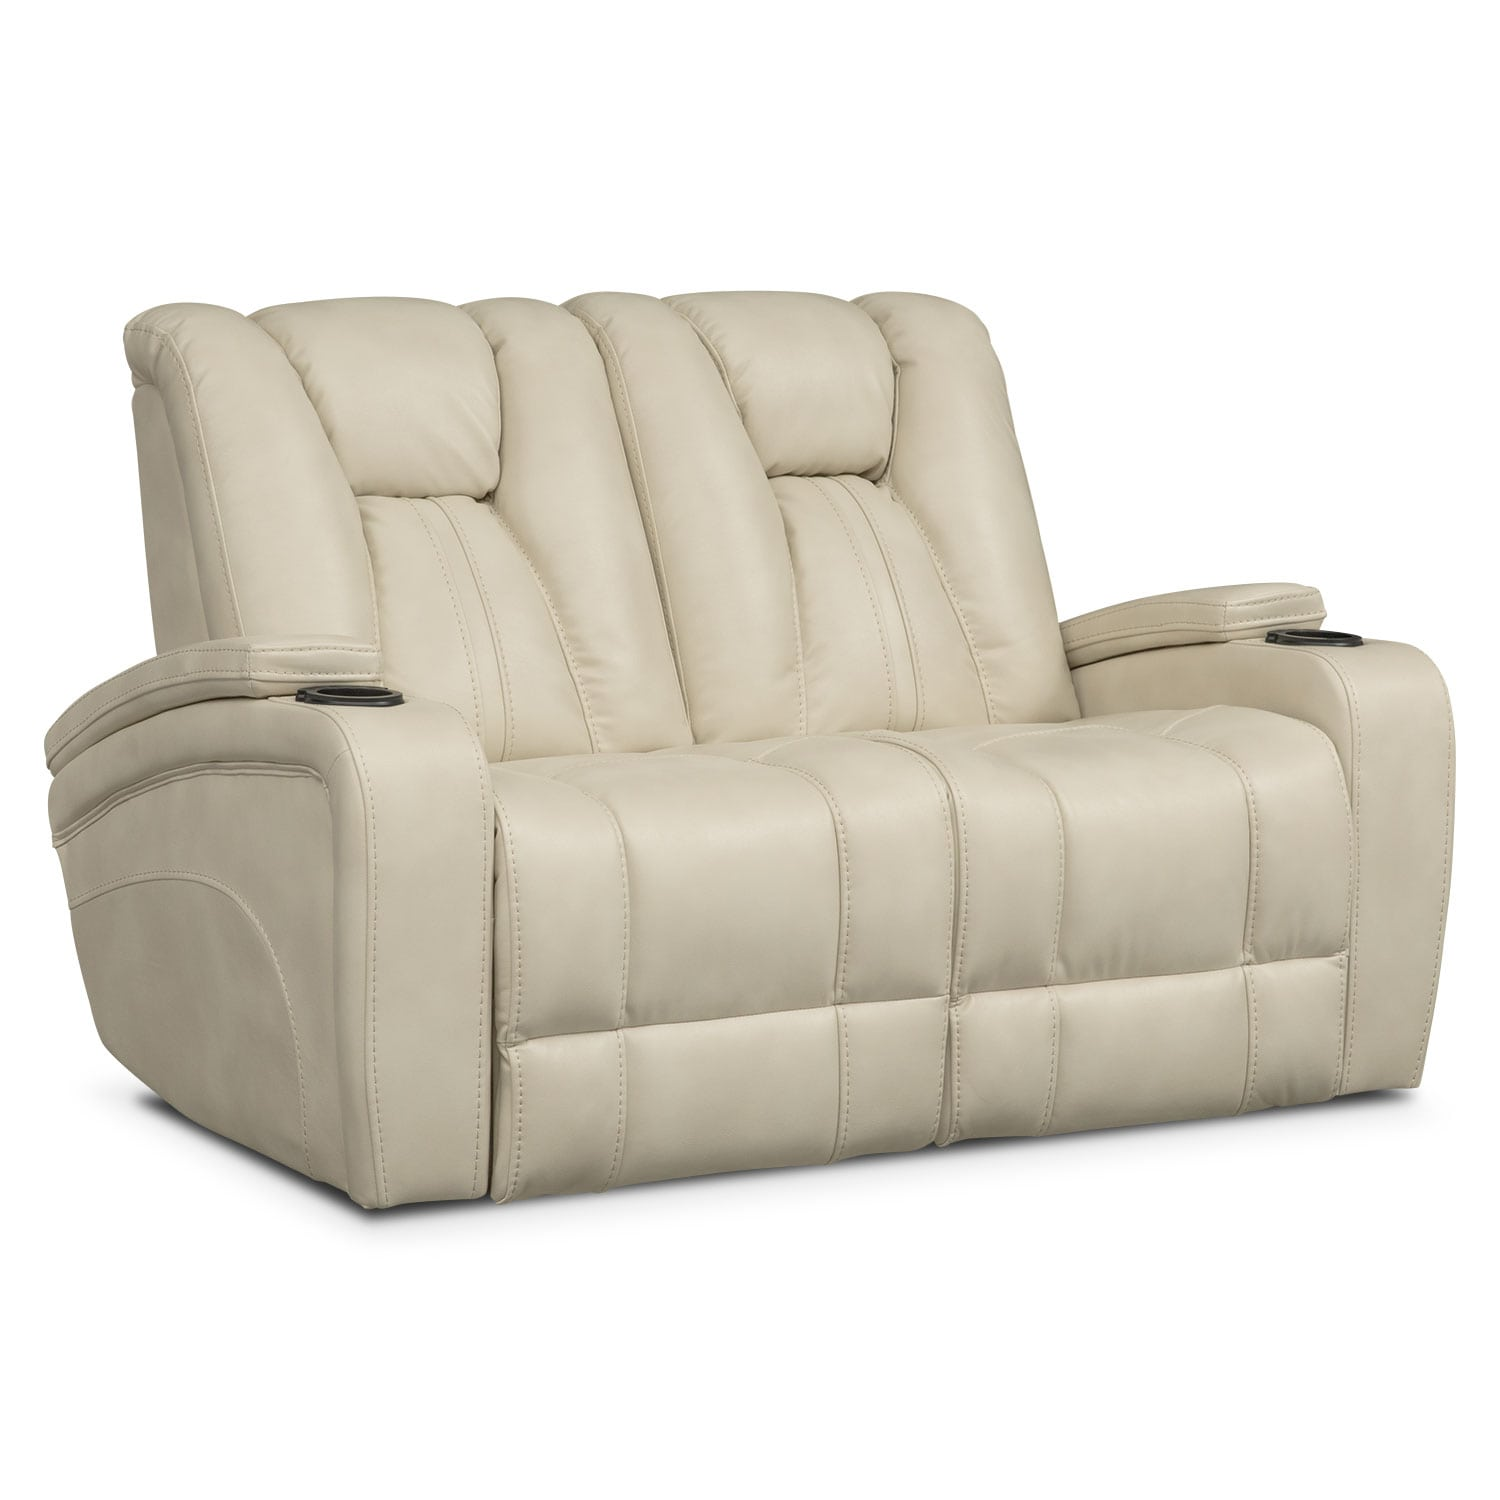 charlton push value city back recliners the furniture pin for recliner